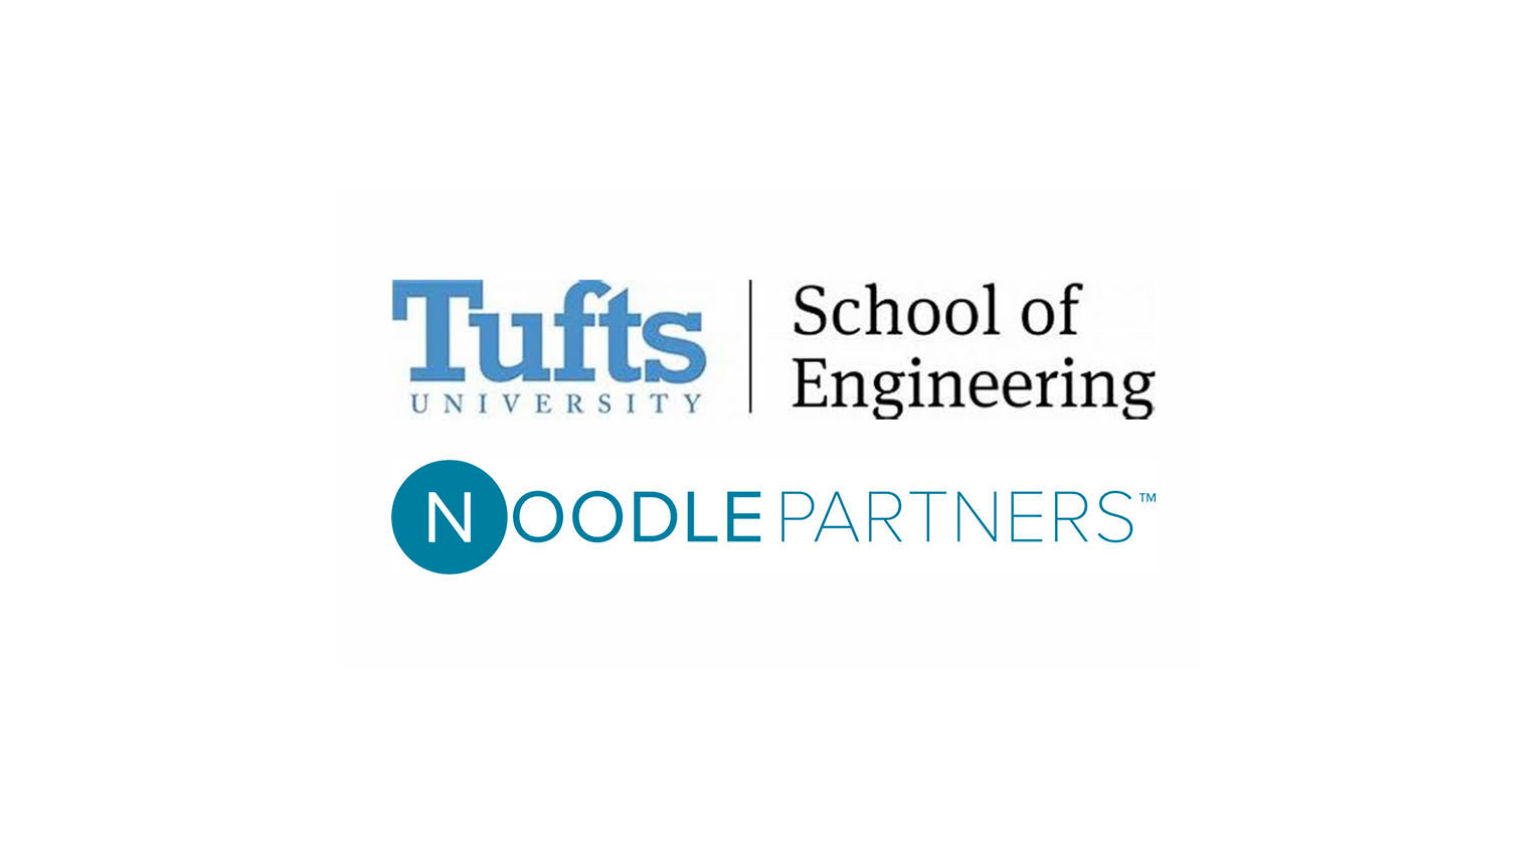 Tufts Academic Calendar 2022 2023.Tufts University To Add New Online Master S In Data Science And Post Baccalaureate In Computer Science Noodle Partners